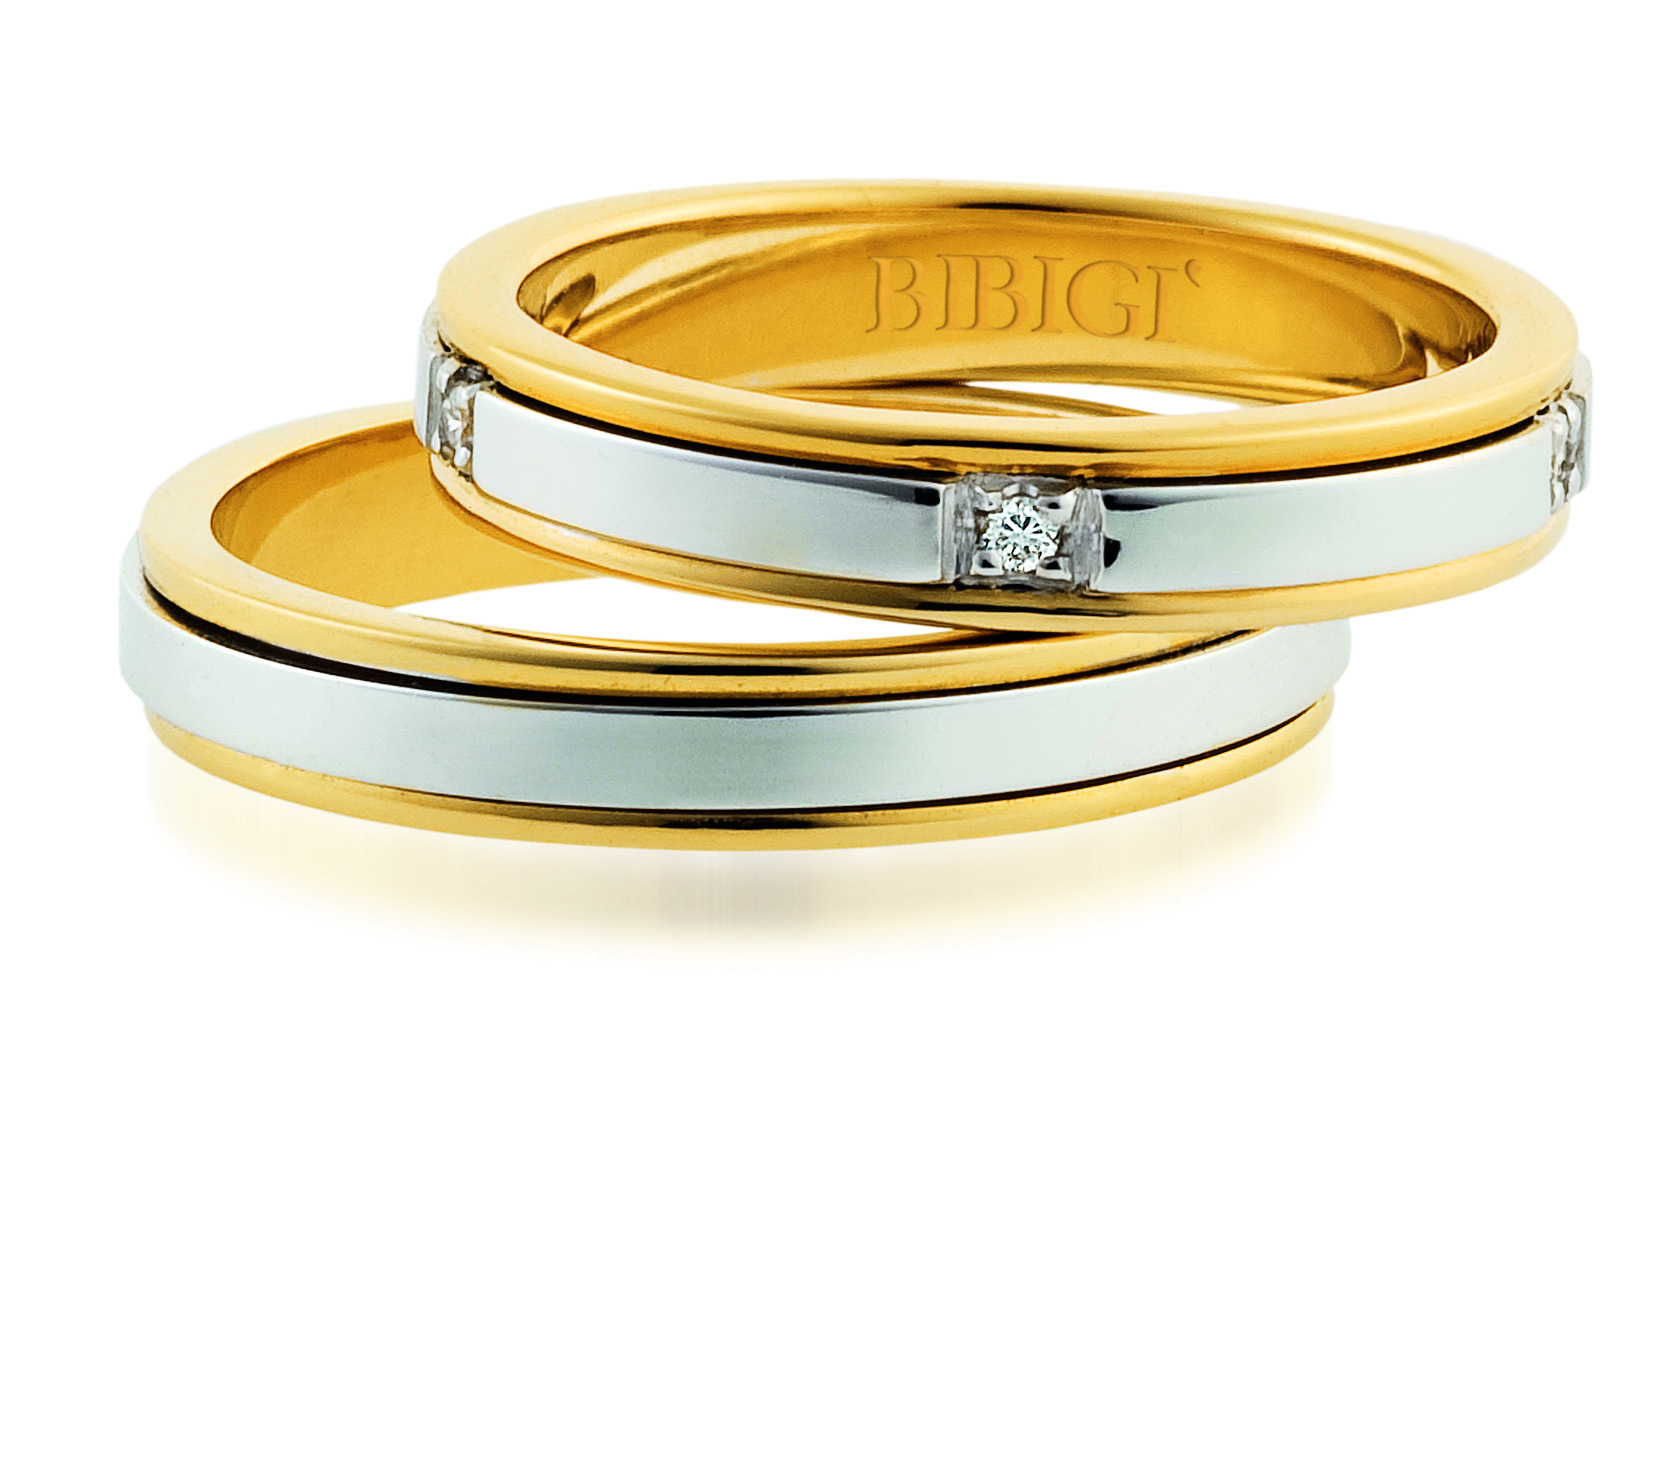 bibigi wedding rings 9-1